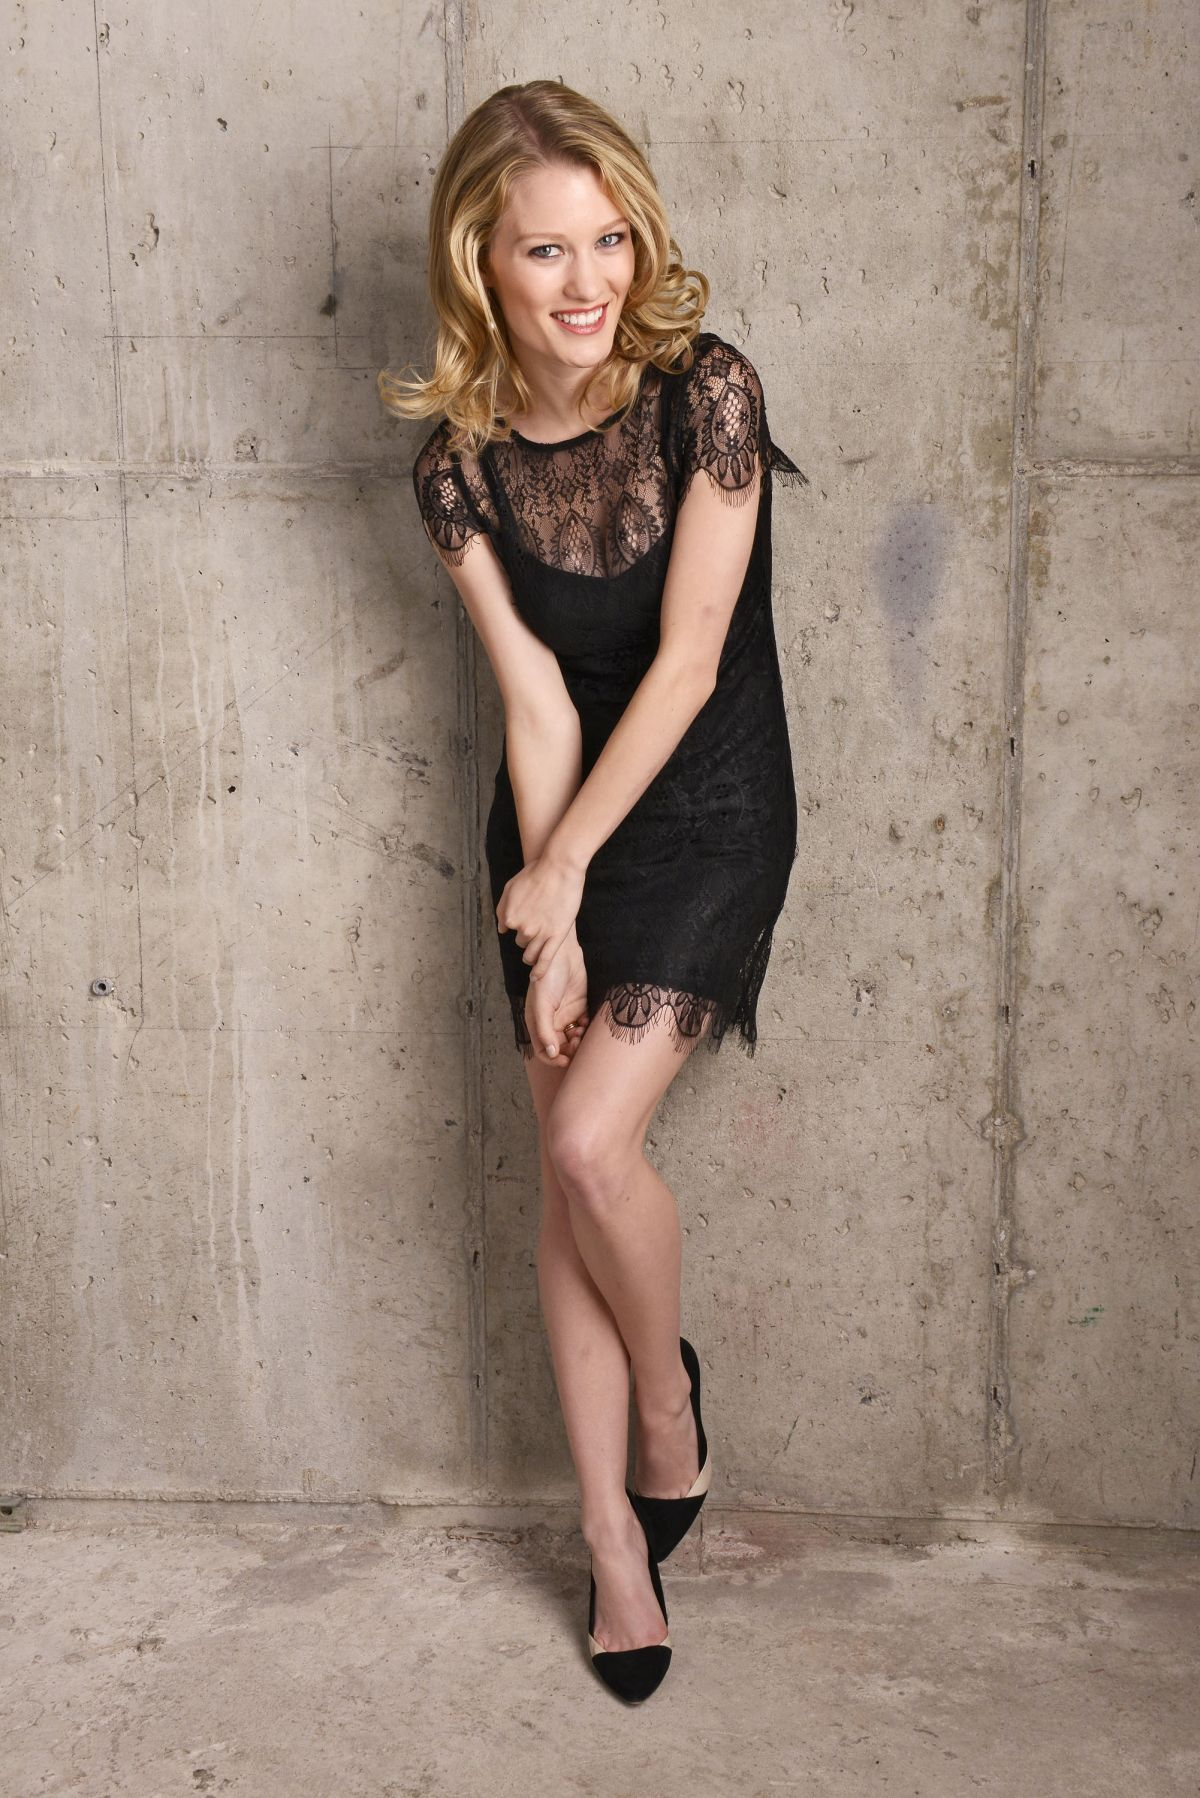 Ashley hinshaw goodbye to all that 7